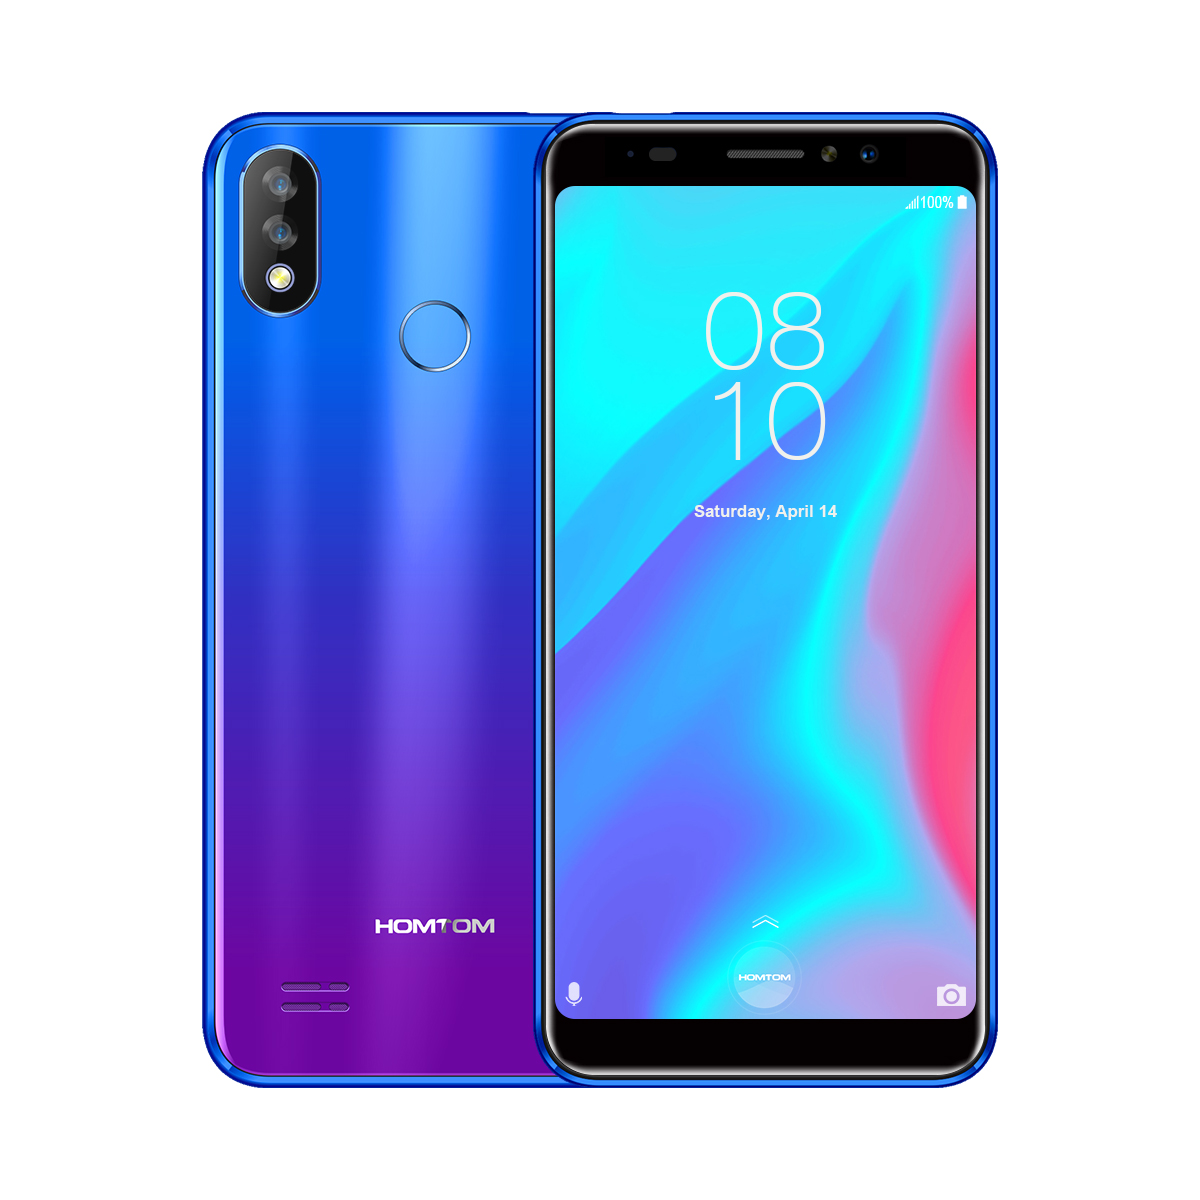 HOMTOM C8 2GB +32GB Cool Blue